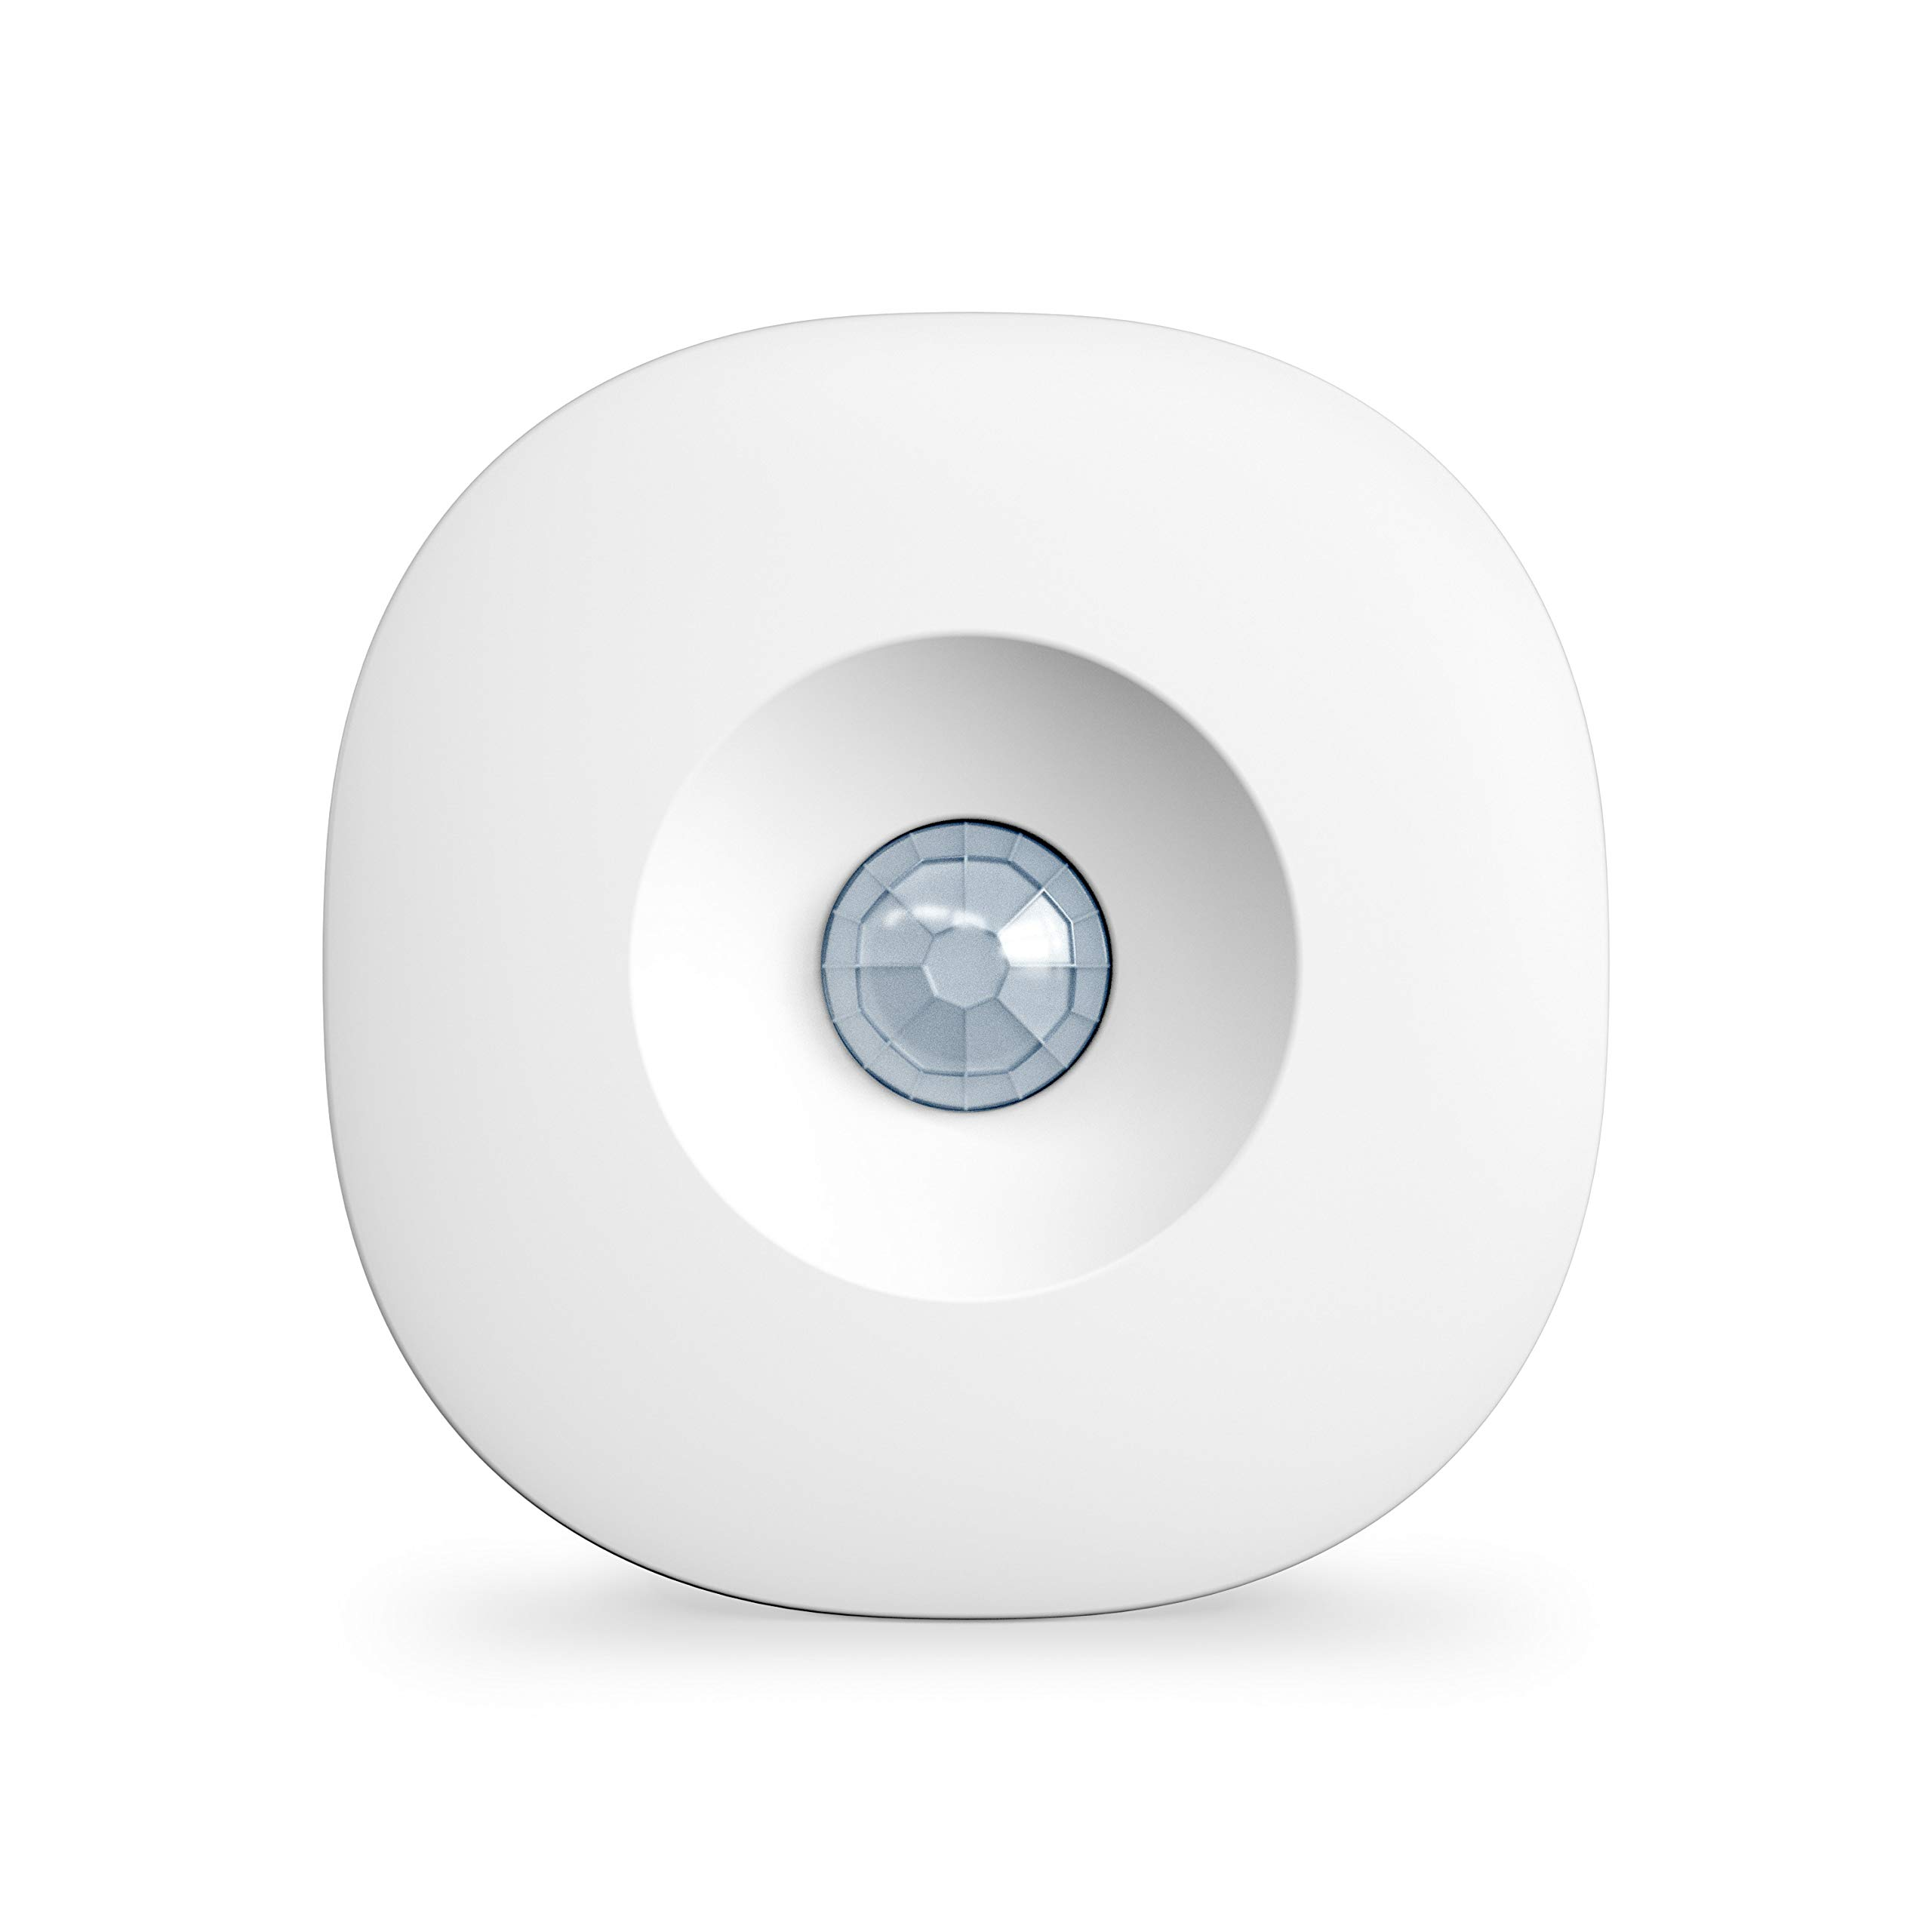 Samsung SmartThings Motion Sensor [GP-U999SJVLBAA] with Slim Design and Optional Automated Alerts - Alexa Compatible - White by Samsung (Image #1)